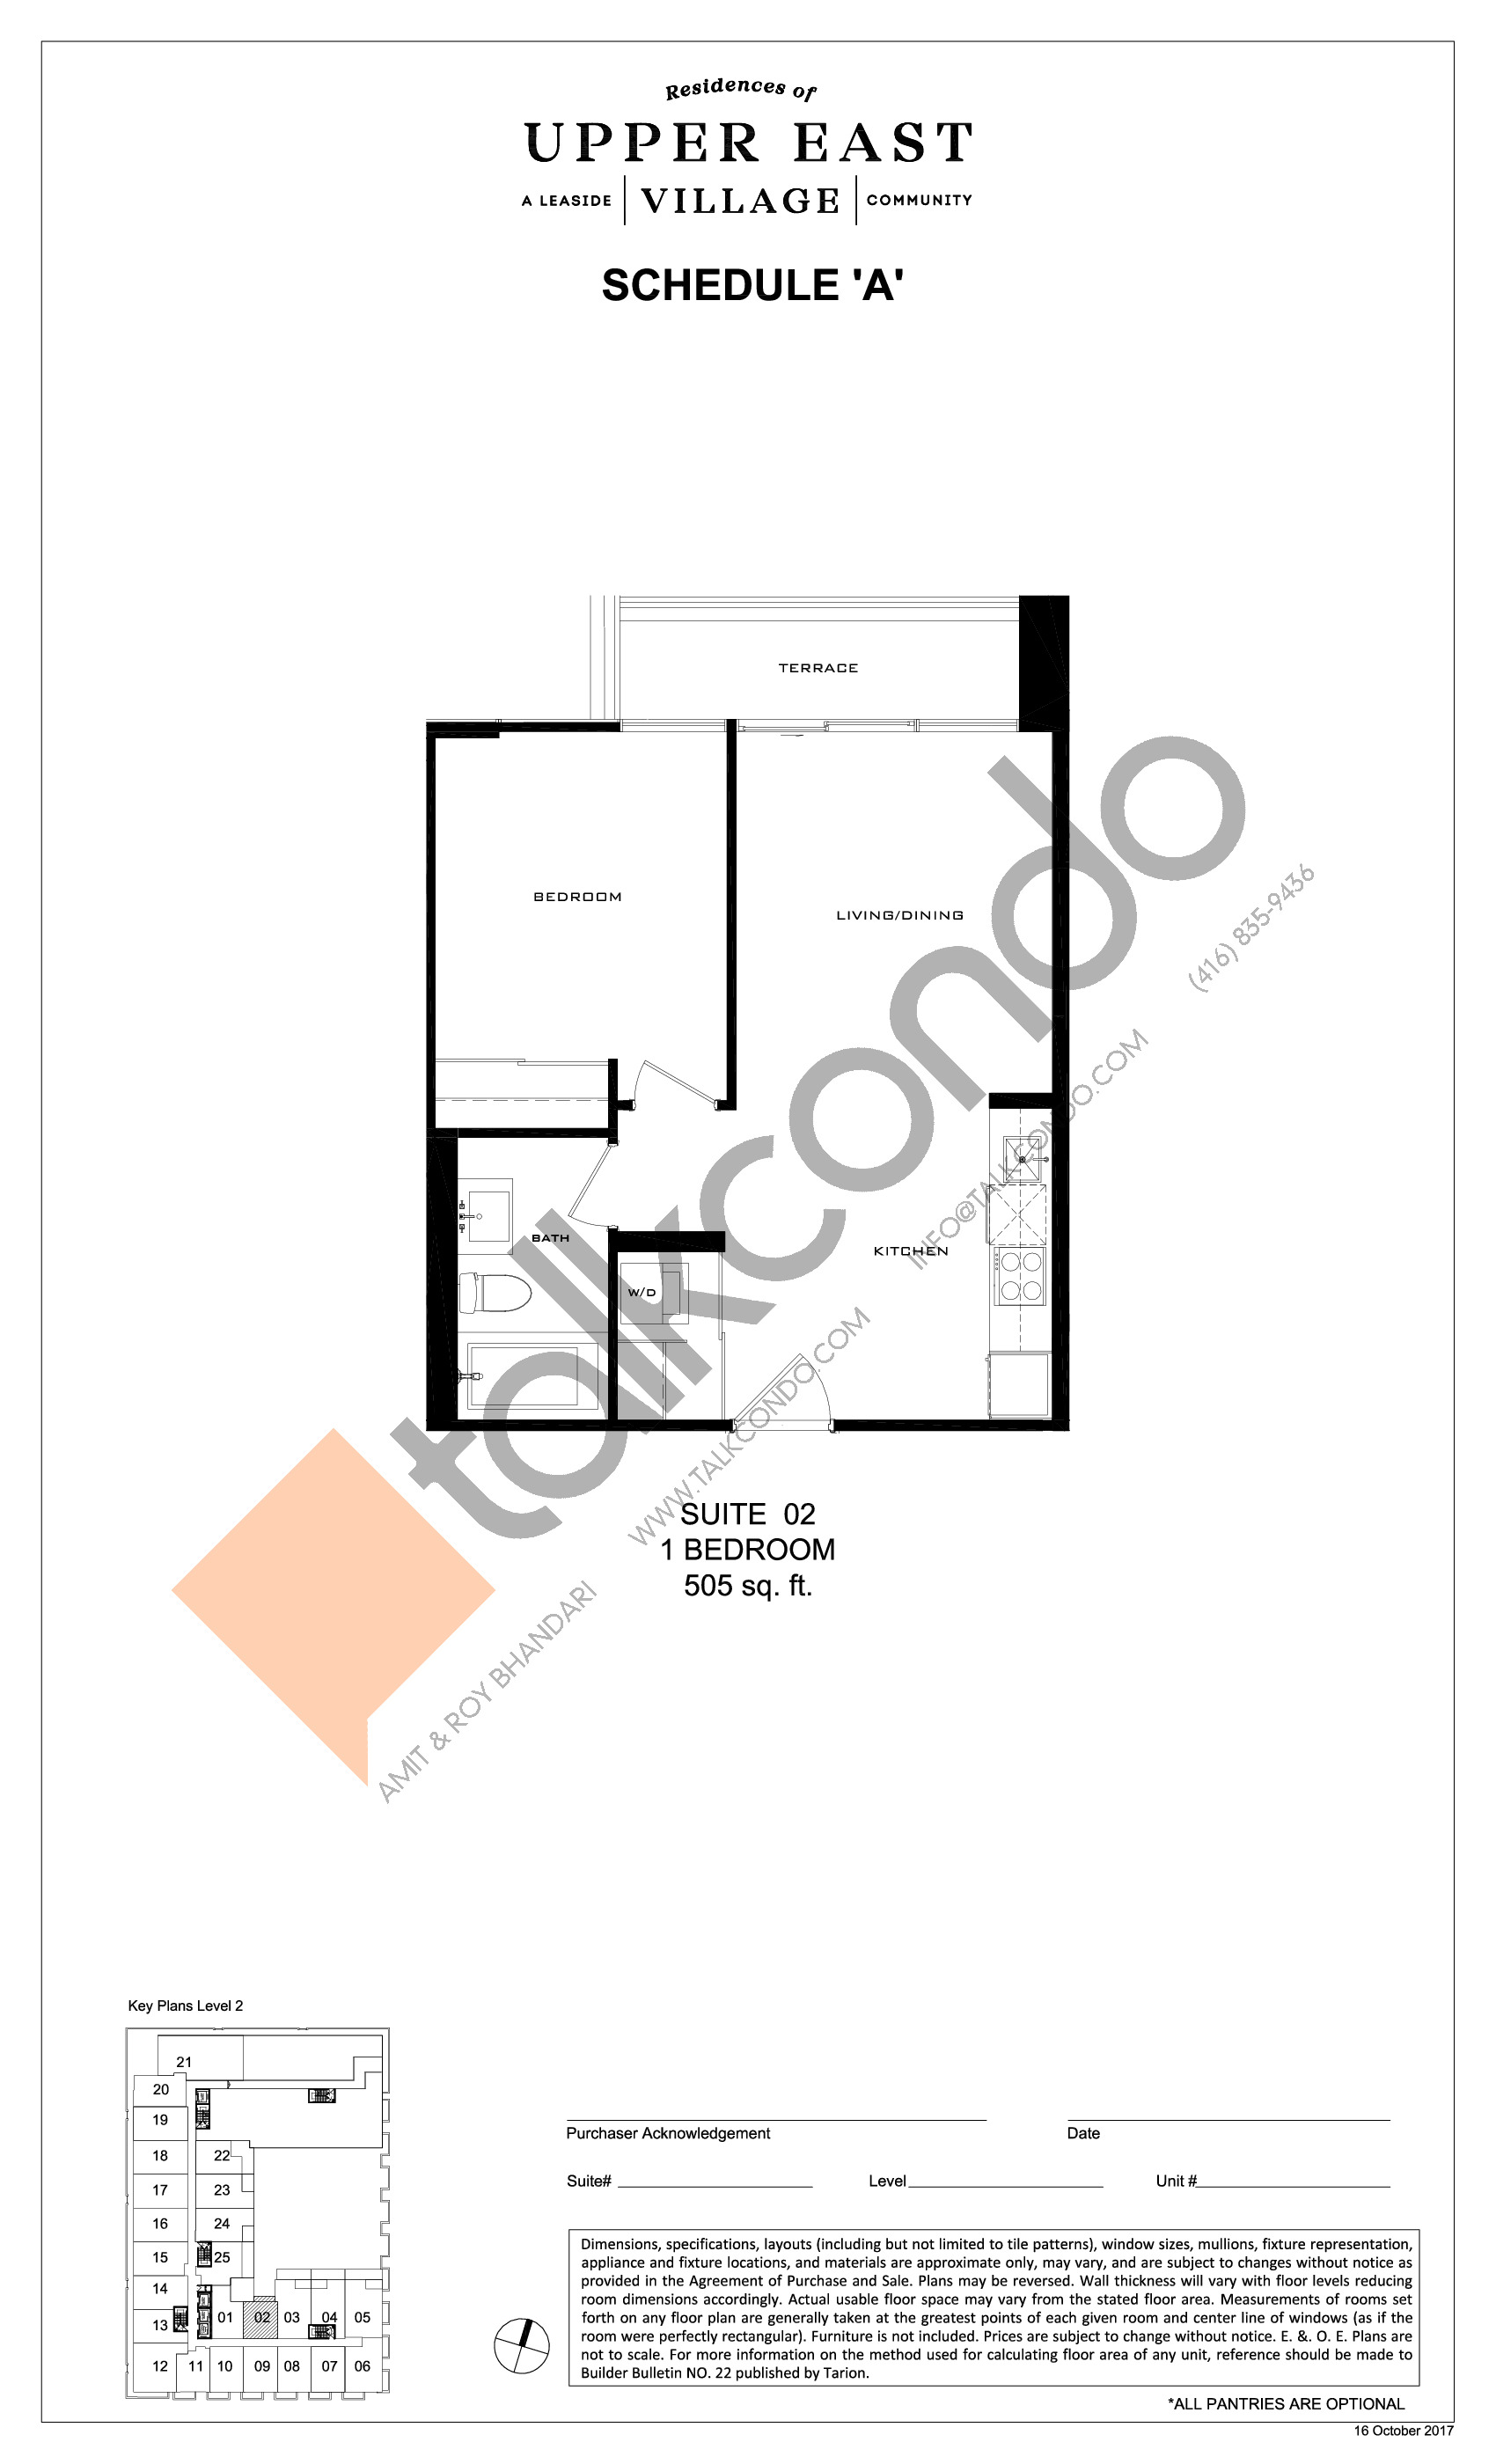 Suite 02 Floor Plan at Upper East Village Condos - 505 sq.ft